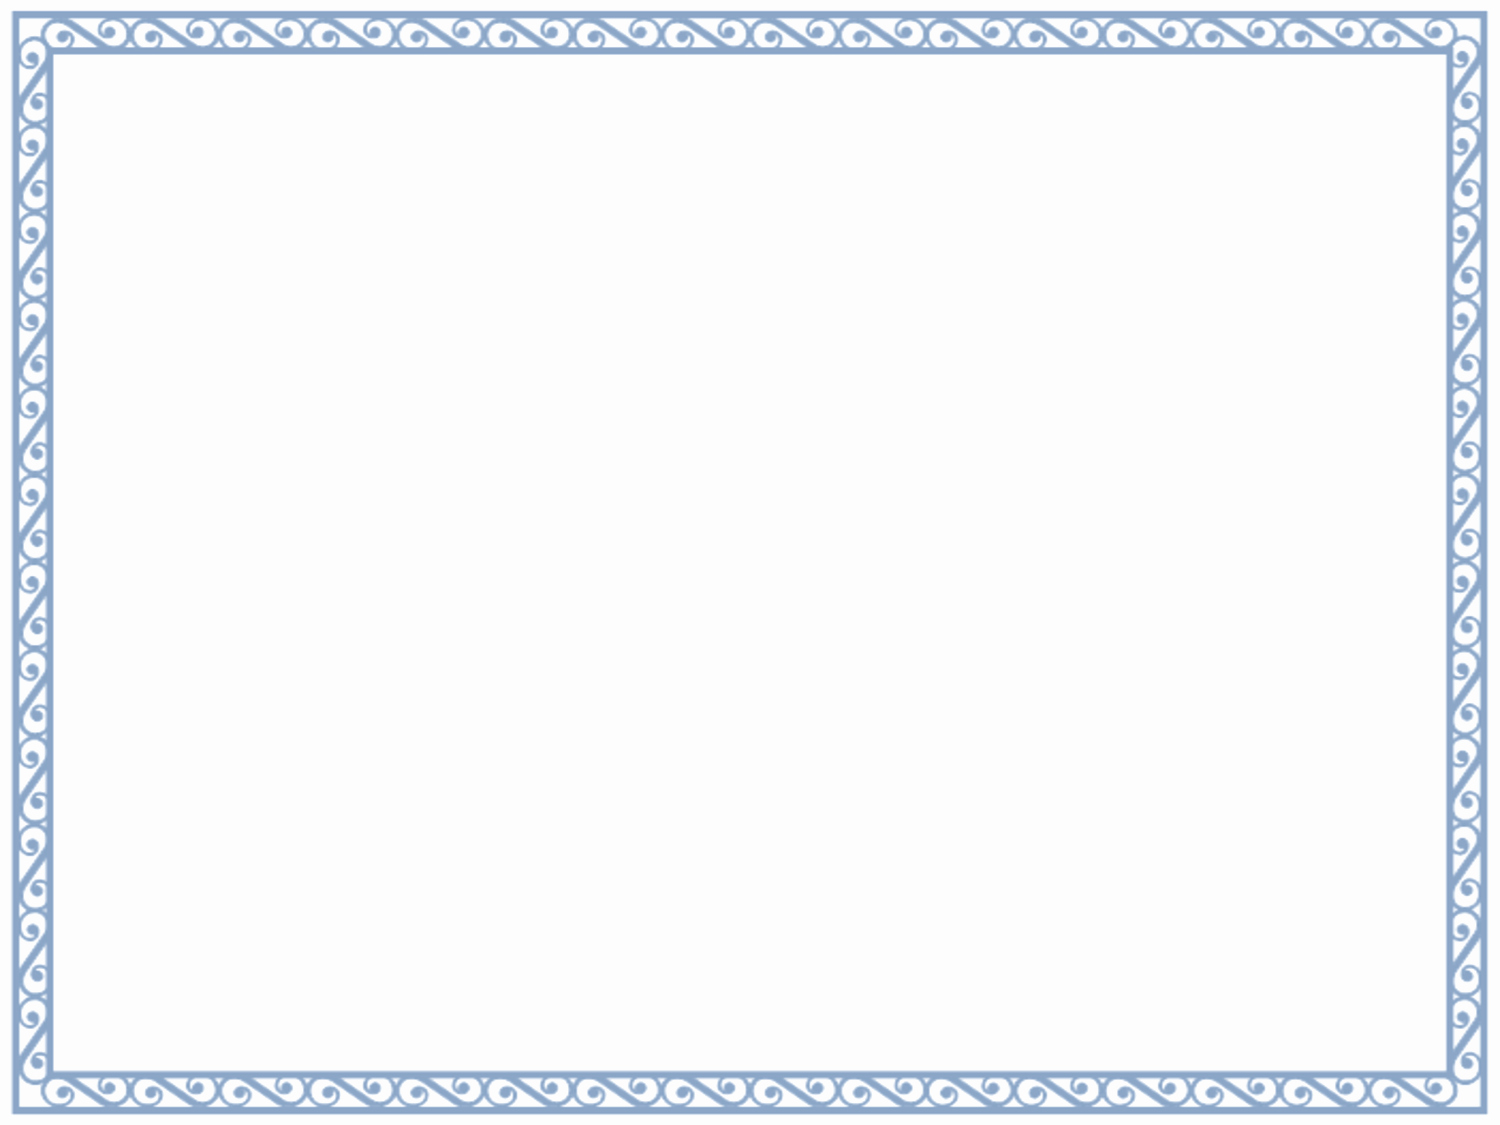 Free Printable Blank Certificate Borders Luxury 5 New Certificate Border Templates